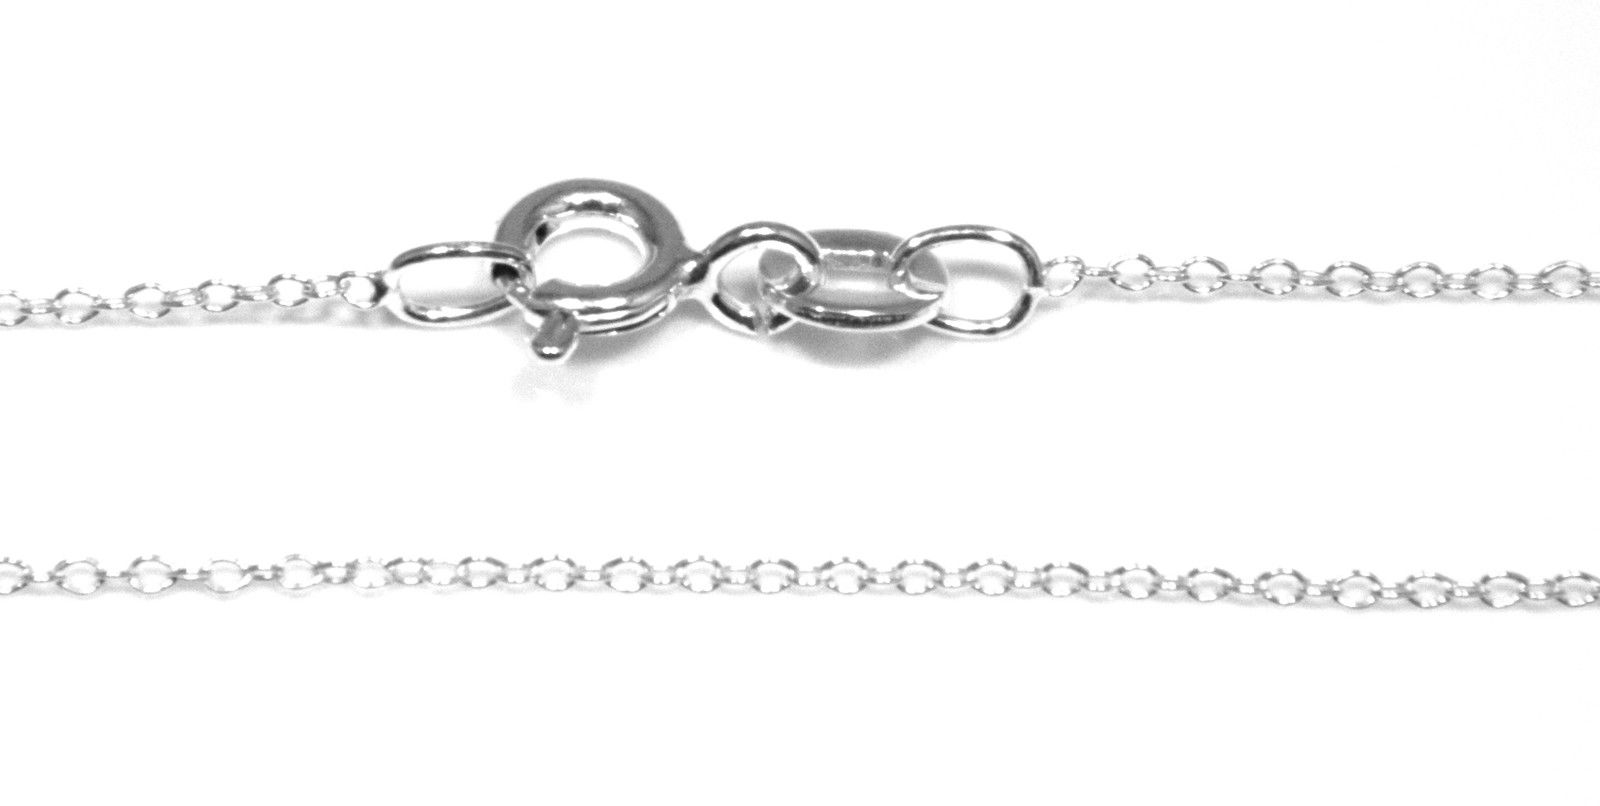 925 Sterling Silver 46cm//18inch Childs Chain 2mm Gauge Belcher Style